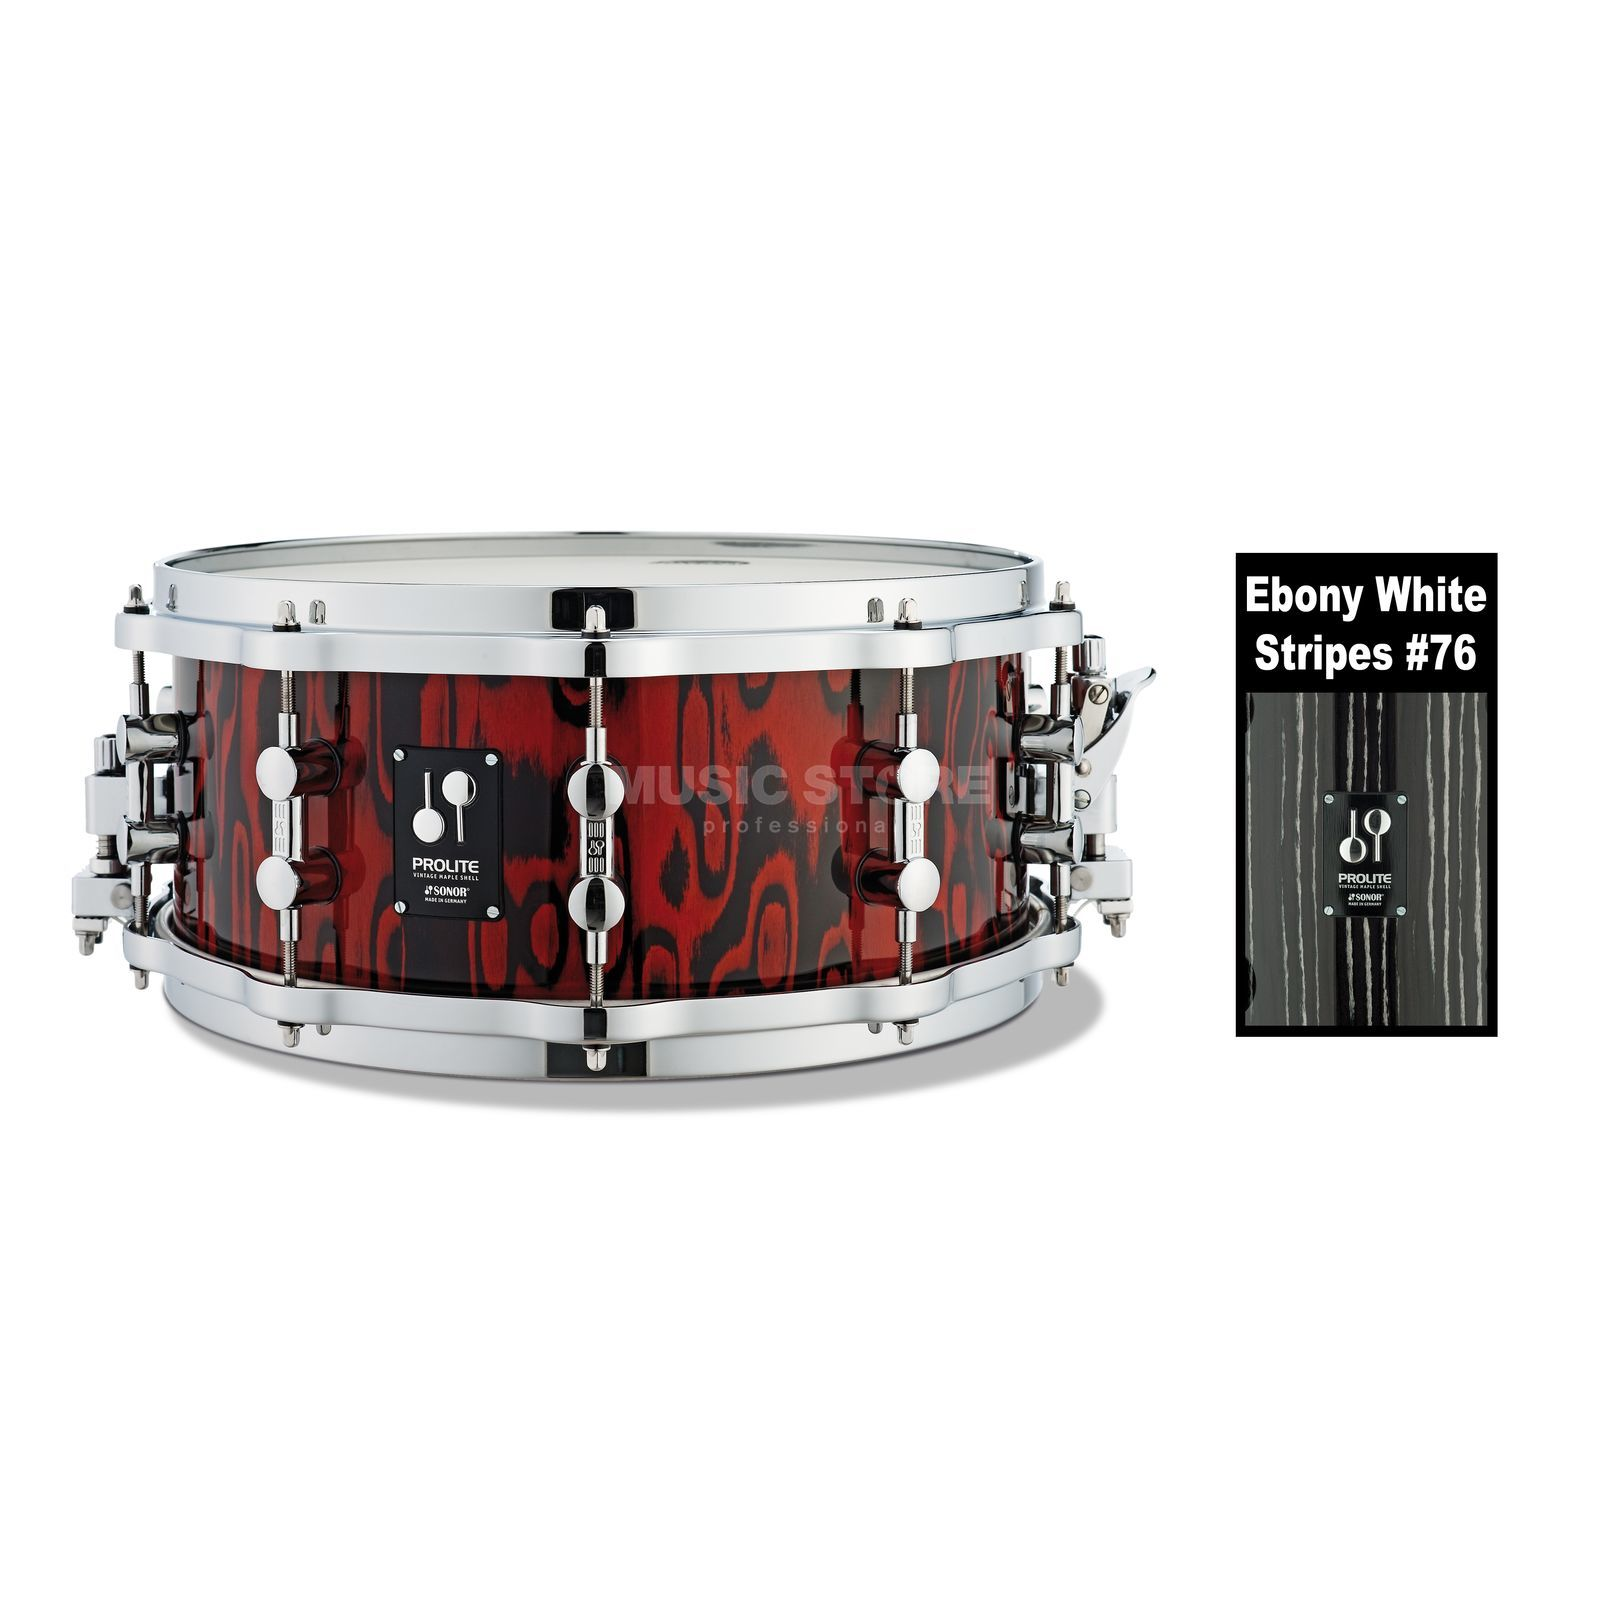 "Sonor ProLite Snare PL 12 1406 SDWD, 14""x6"",Ebony White Stripes #77 Product Image"